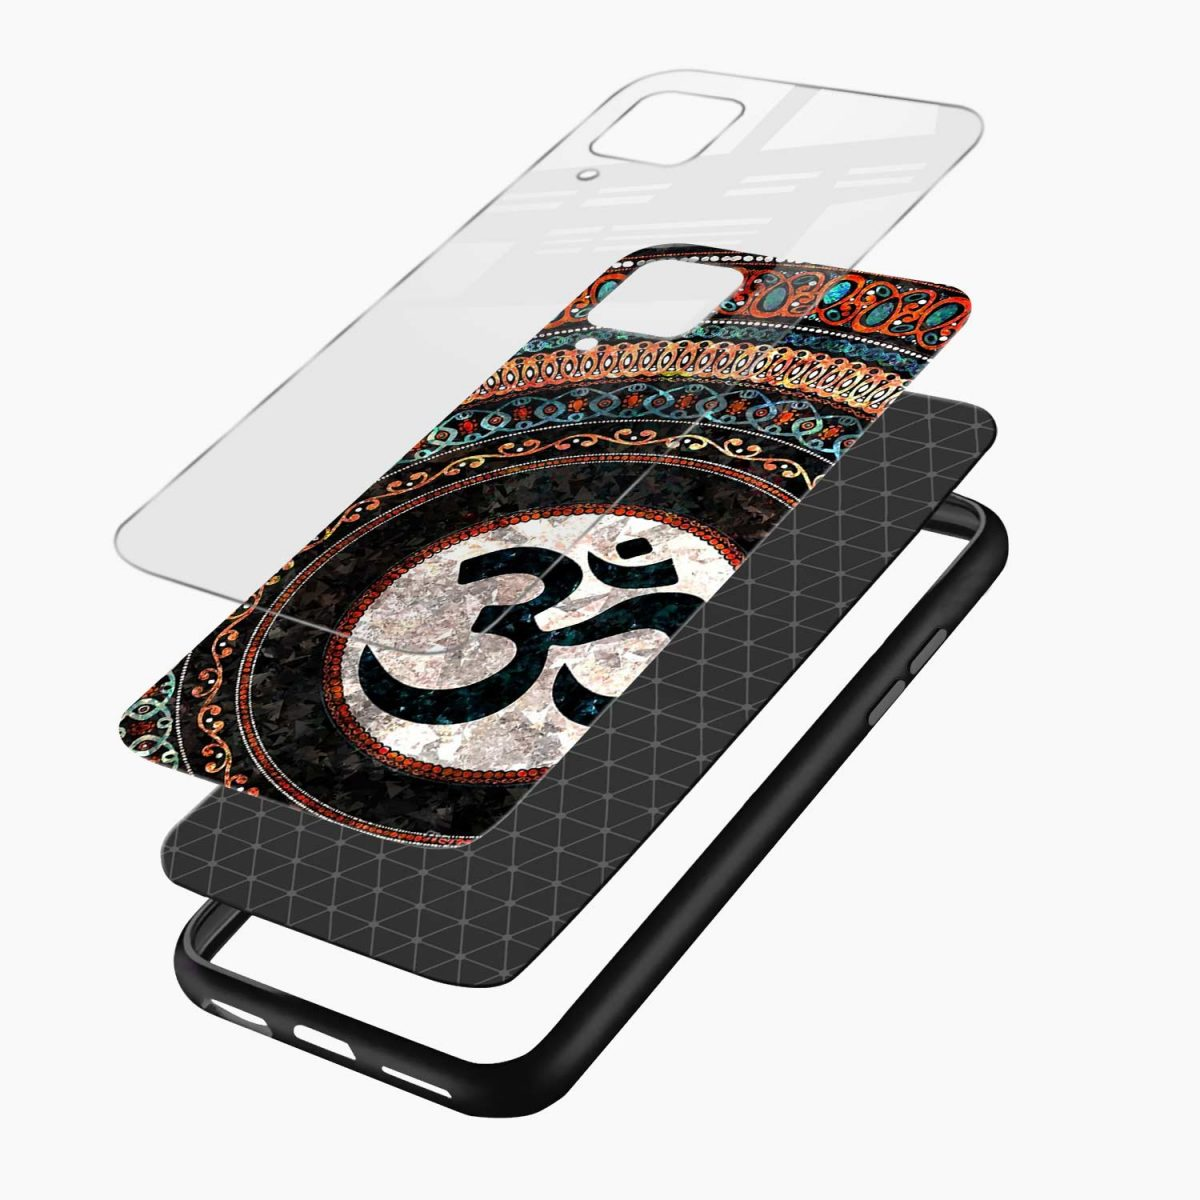 om glass layers view samsung galaxy a12 back cover